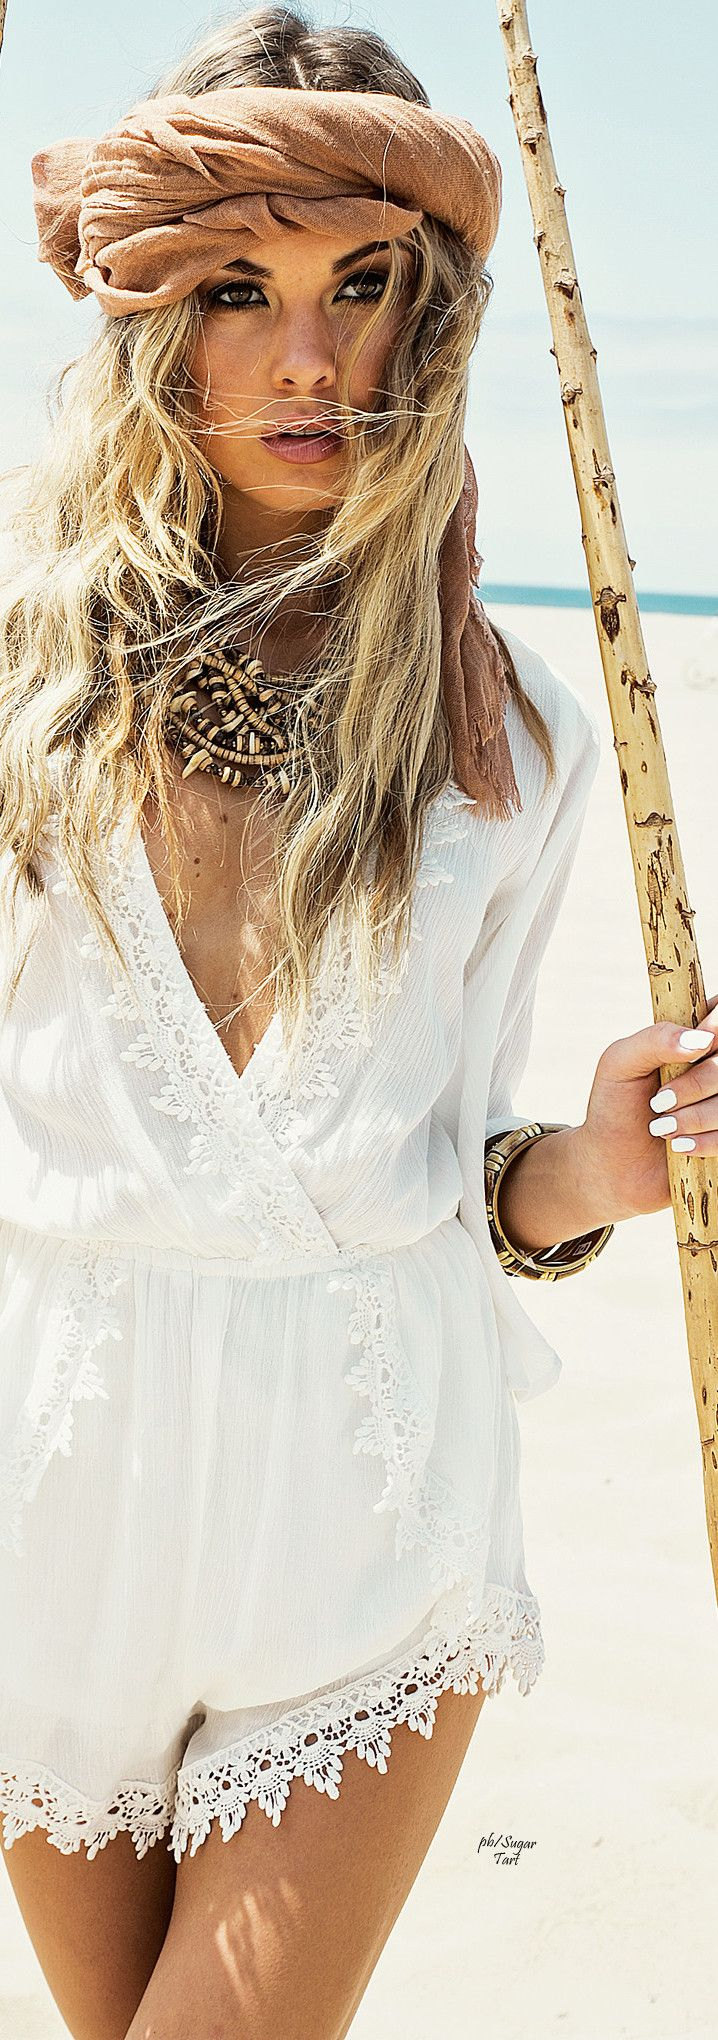 Glam Bohemian Chic - get the look with the Lucy Love Long Sleeve Lacey Romper @ http://www.avaadorn.com/lucy-love-long-sleeve-lacey-romper-more-colors-p-827.html